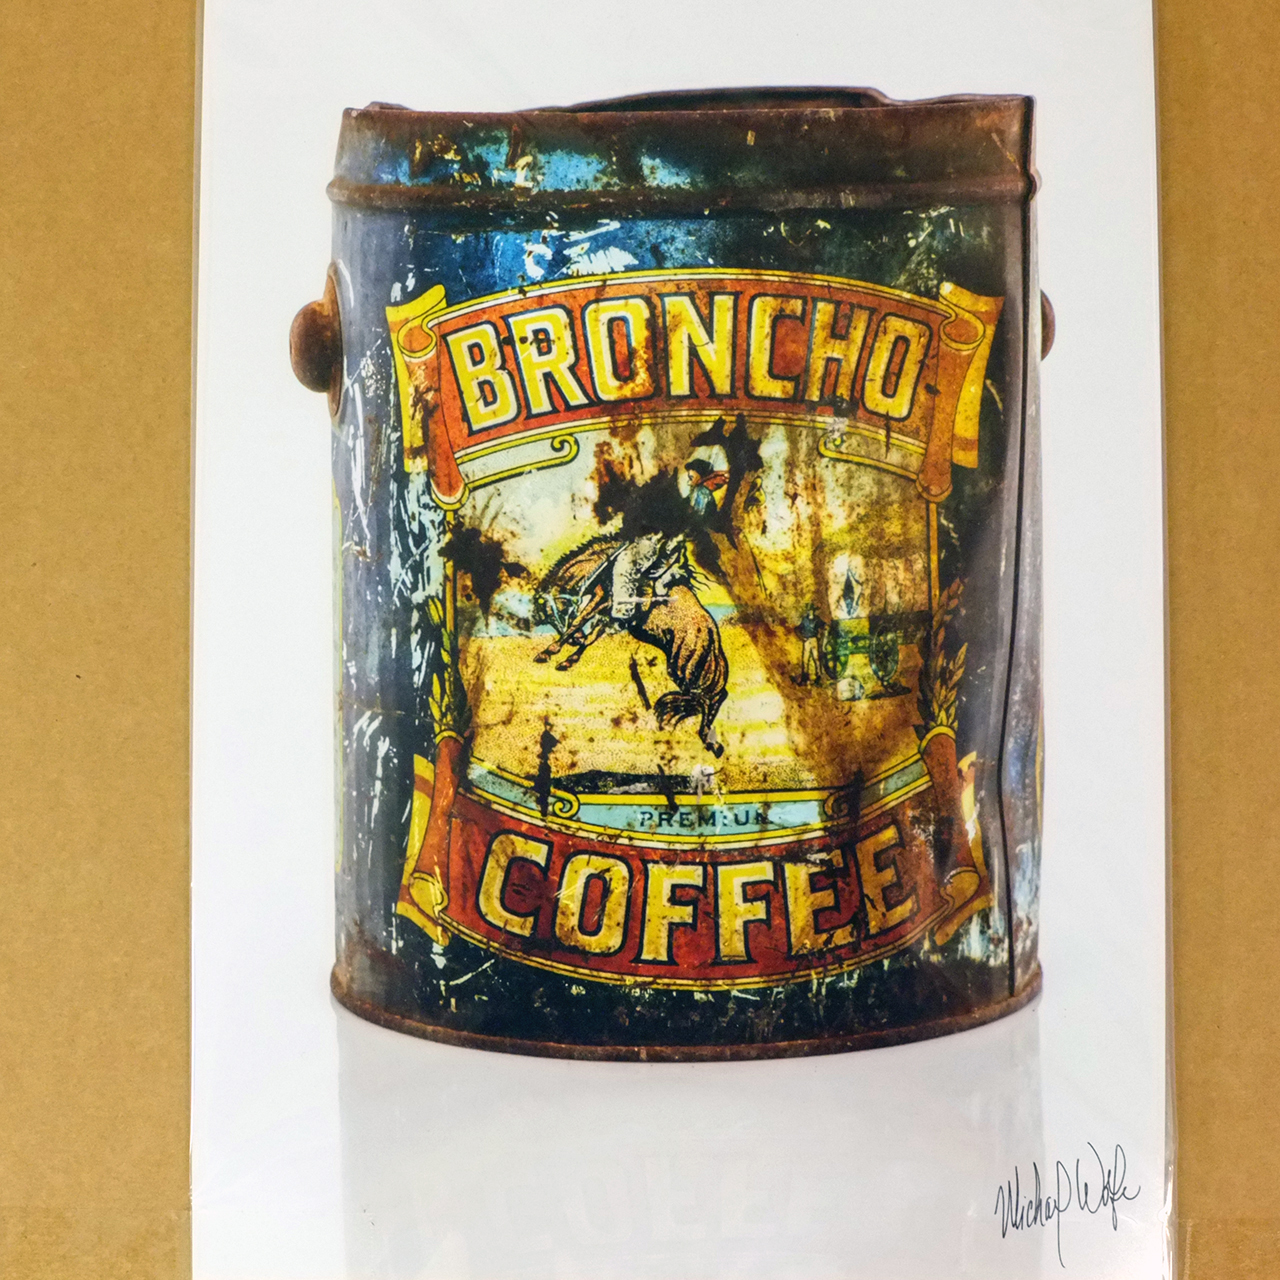 Broncho Tin from Art of the Pick